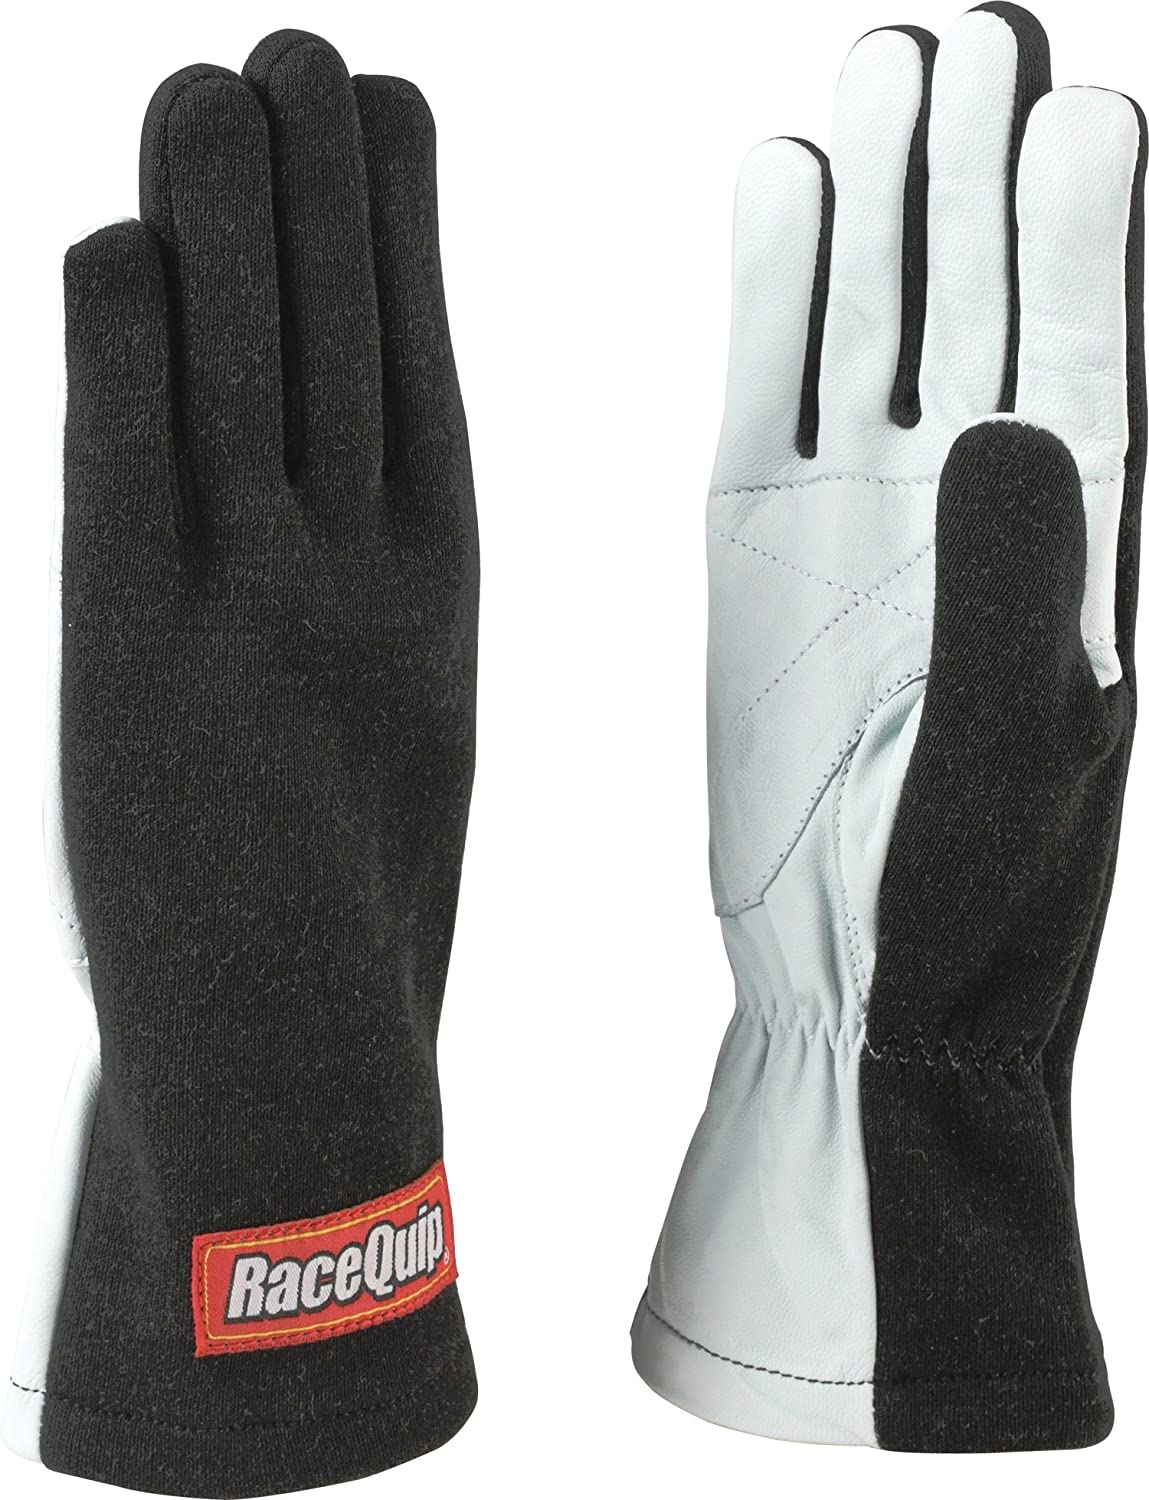 Mens gloves next - Racequip 350005 350 Series Large Black Single Layer Driving Gloves